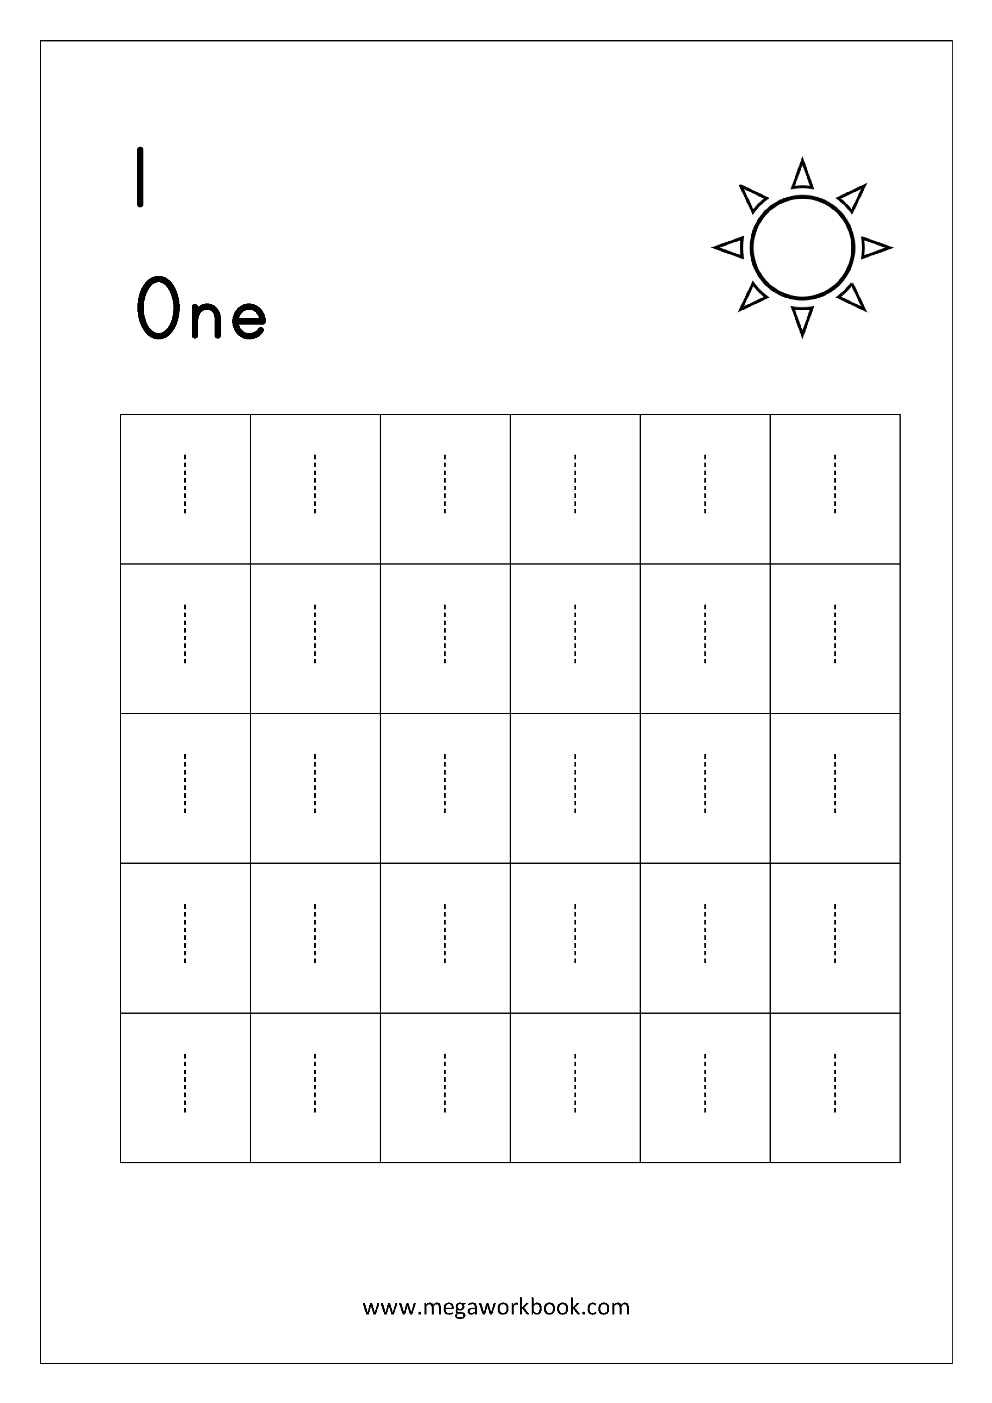 image regarding Printable Tracing Numbers referred to as Totally free Printable Amount Tracing and Creating (1-10) Worksheets